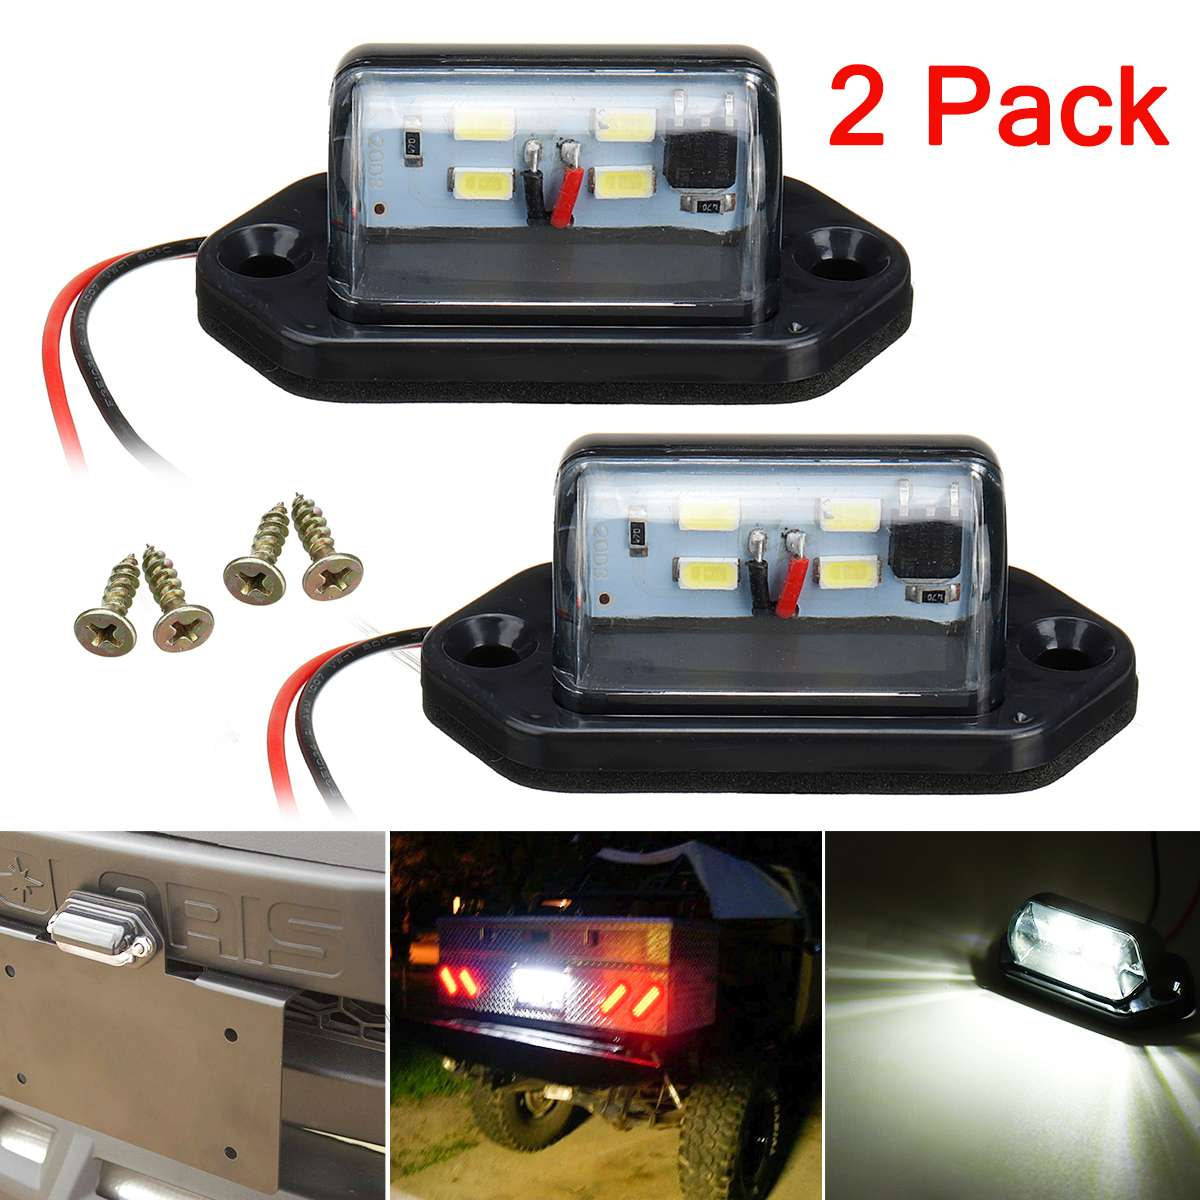 2pcs 12V 24V 4 LEDs LED Car Truck Number License Plate Light Rear Lamp Tail Light For Trailer Boat RV